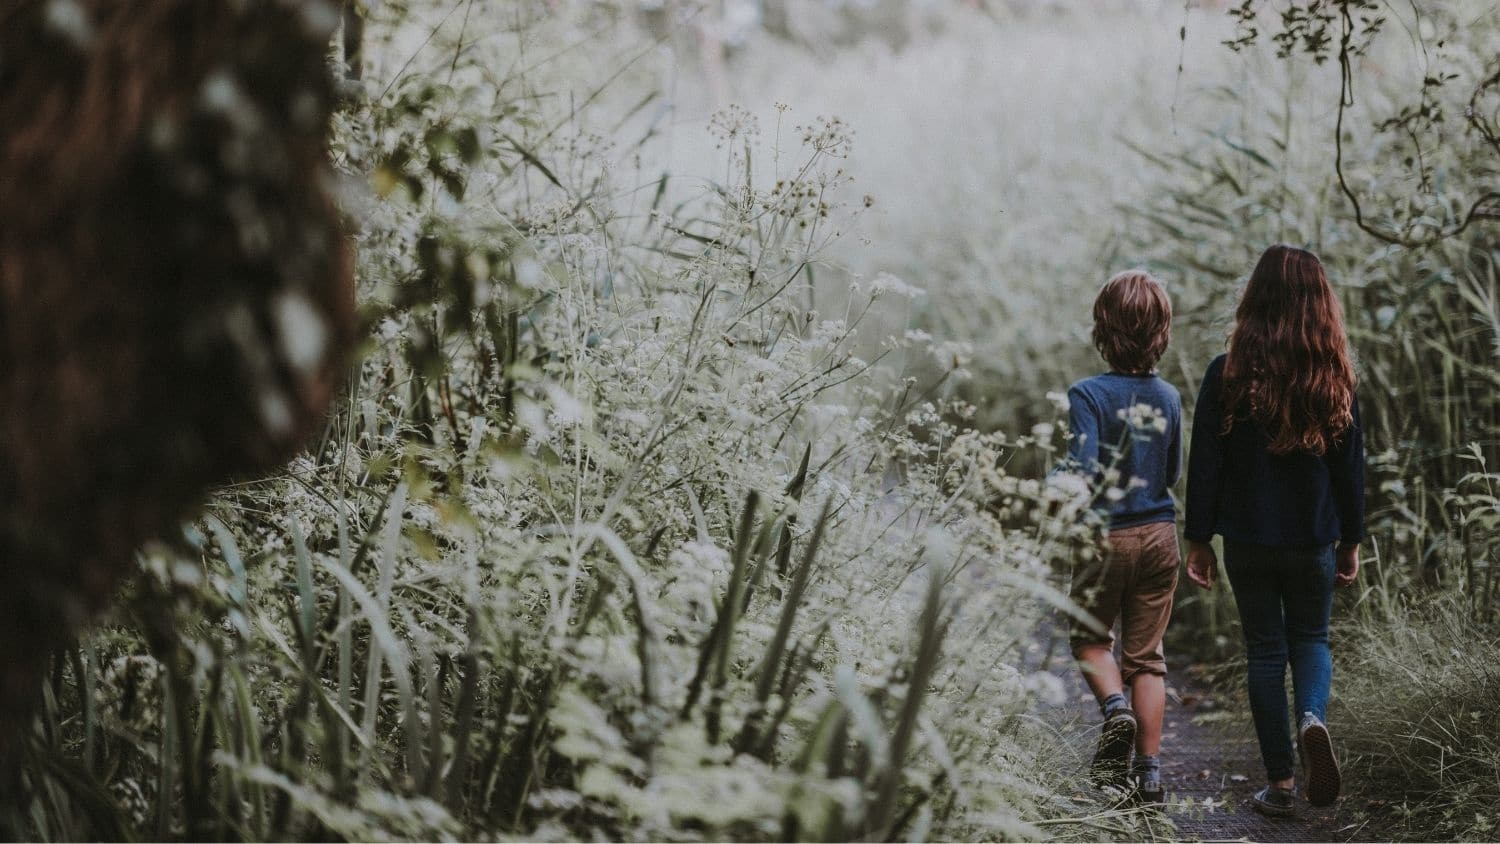 Children in nature - Study Finds Natural Outdoor Spaces Are Less Common at Schools - College of Natural Resources News NC State University